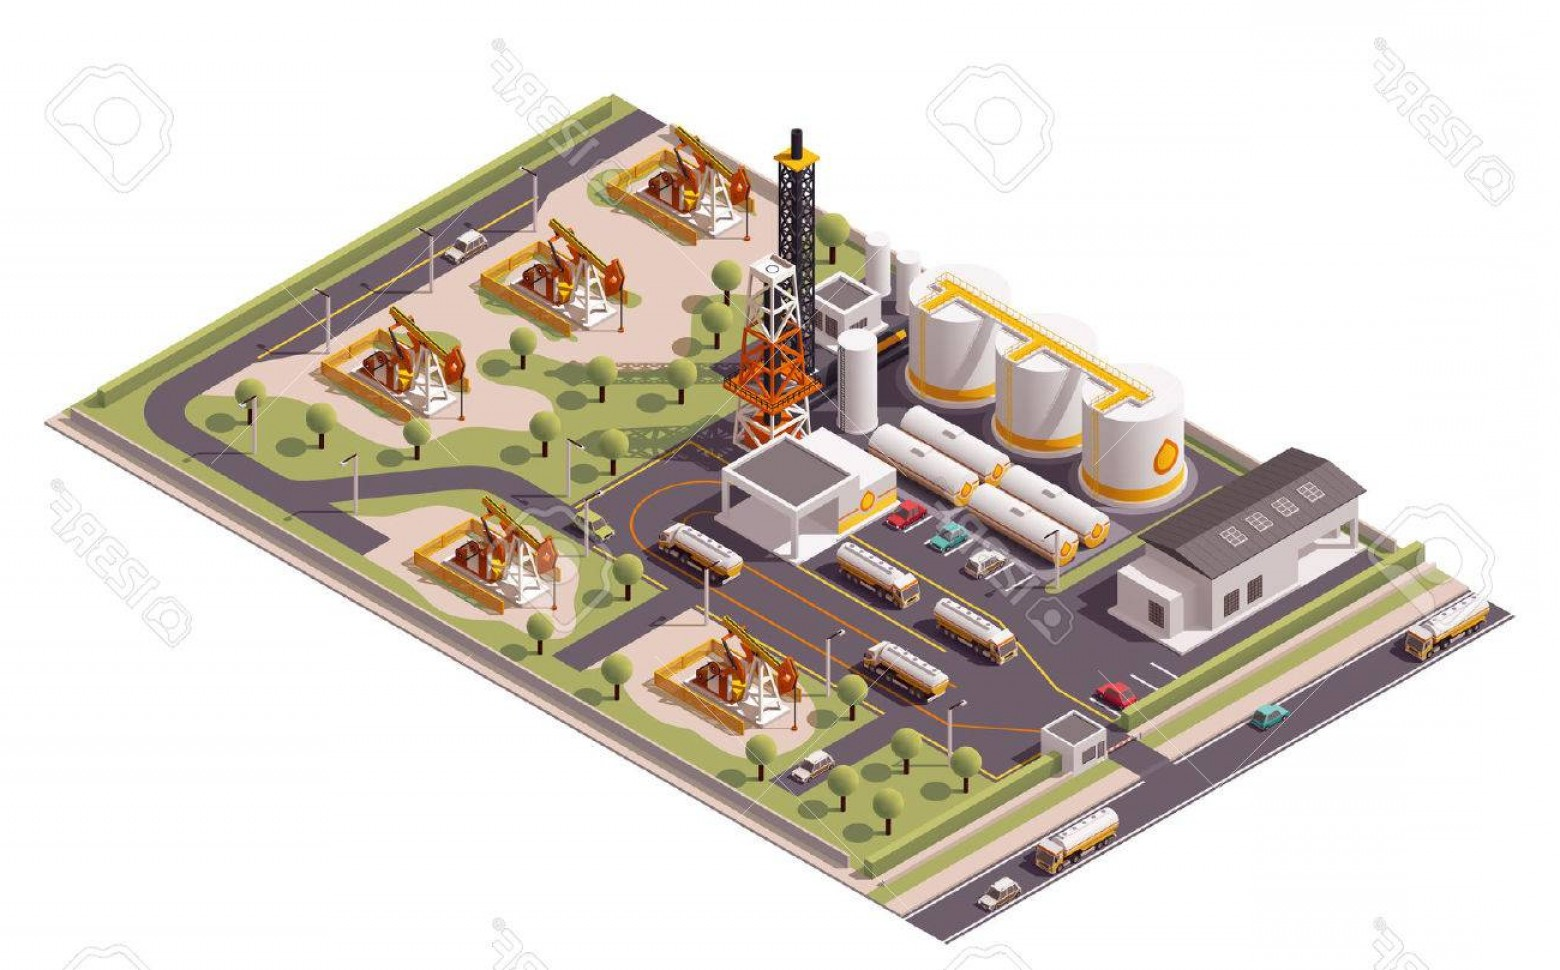 Oilfield Vector Crosses: Photostock Vector Isometric Icon Set Representing Oil Field Extracting Crude Oil